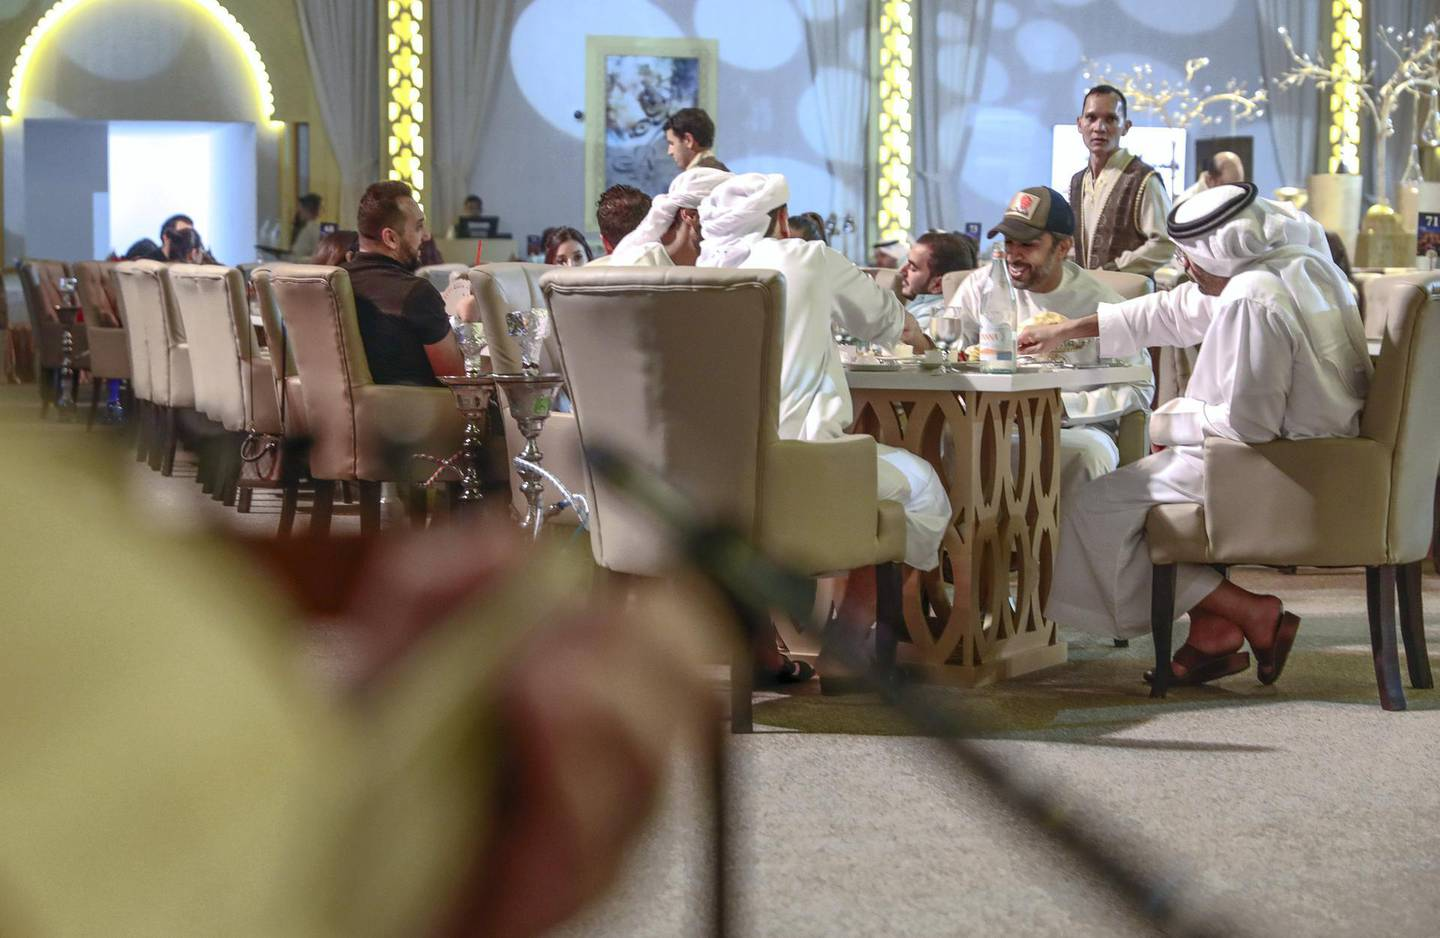 Abu Dhabi, United Arab Emirates, May 22, 2019.    Suhur at the Emirates Palace Hotel with Soux Chef, Yahia Al Mustafa and his Ramadan tent team.Victor Besa/The NationalSection:   NAReporter:  John Dennehy